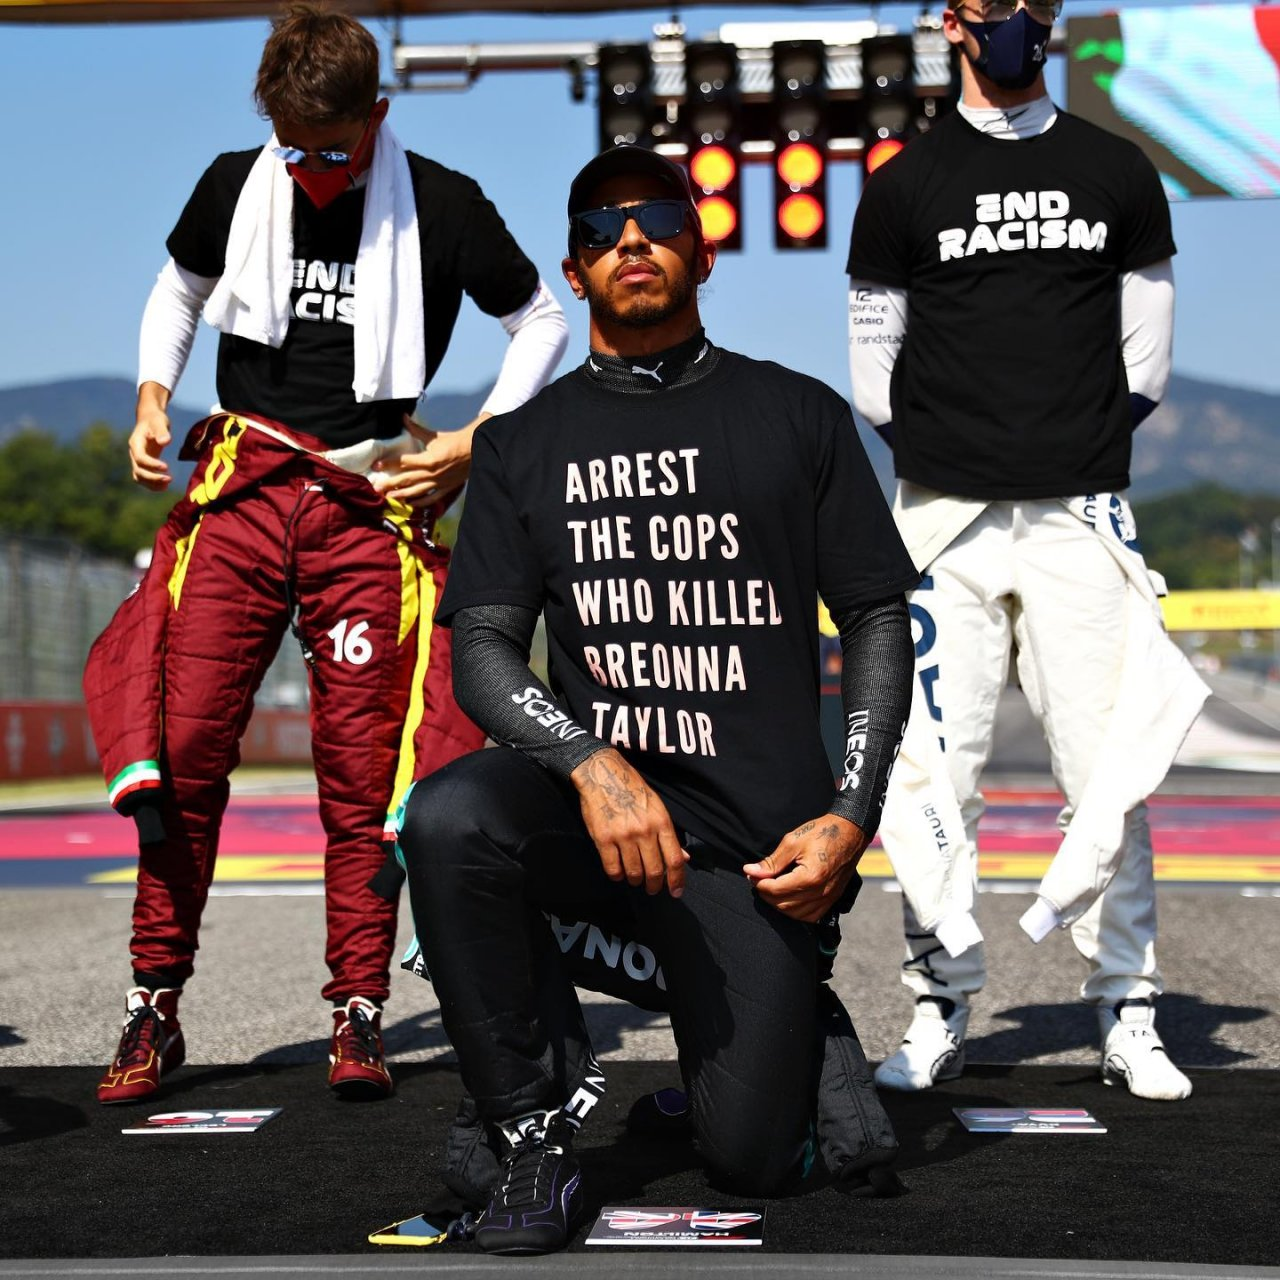 Lewis Hamilton - Arrest the cops who killed Breonna Taylor